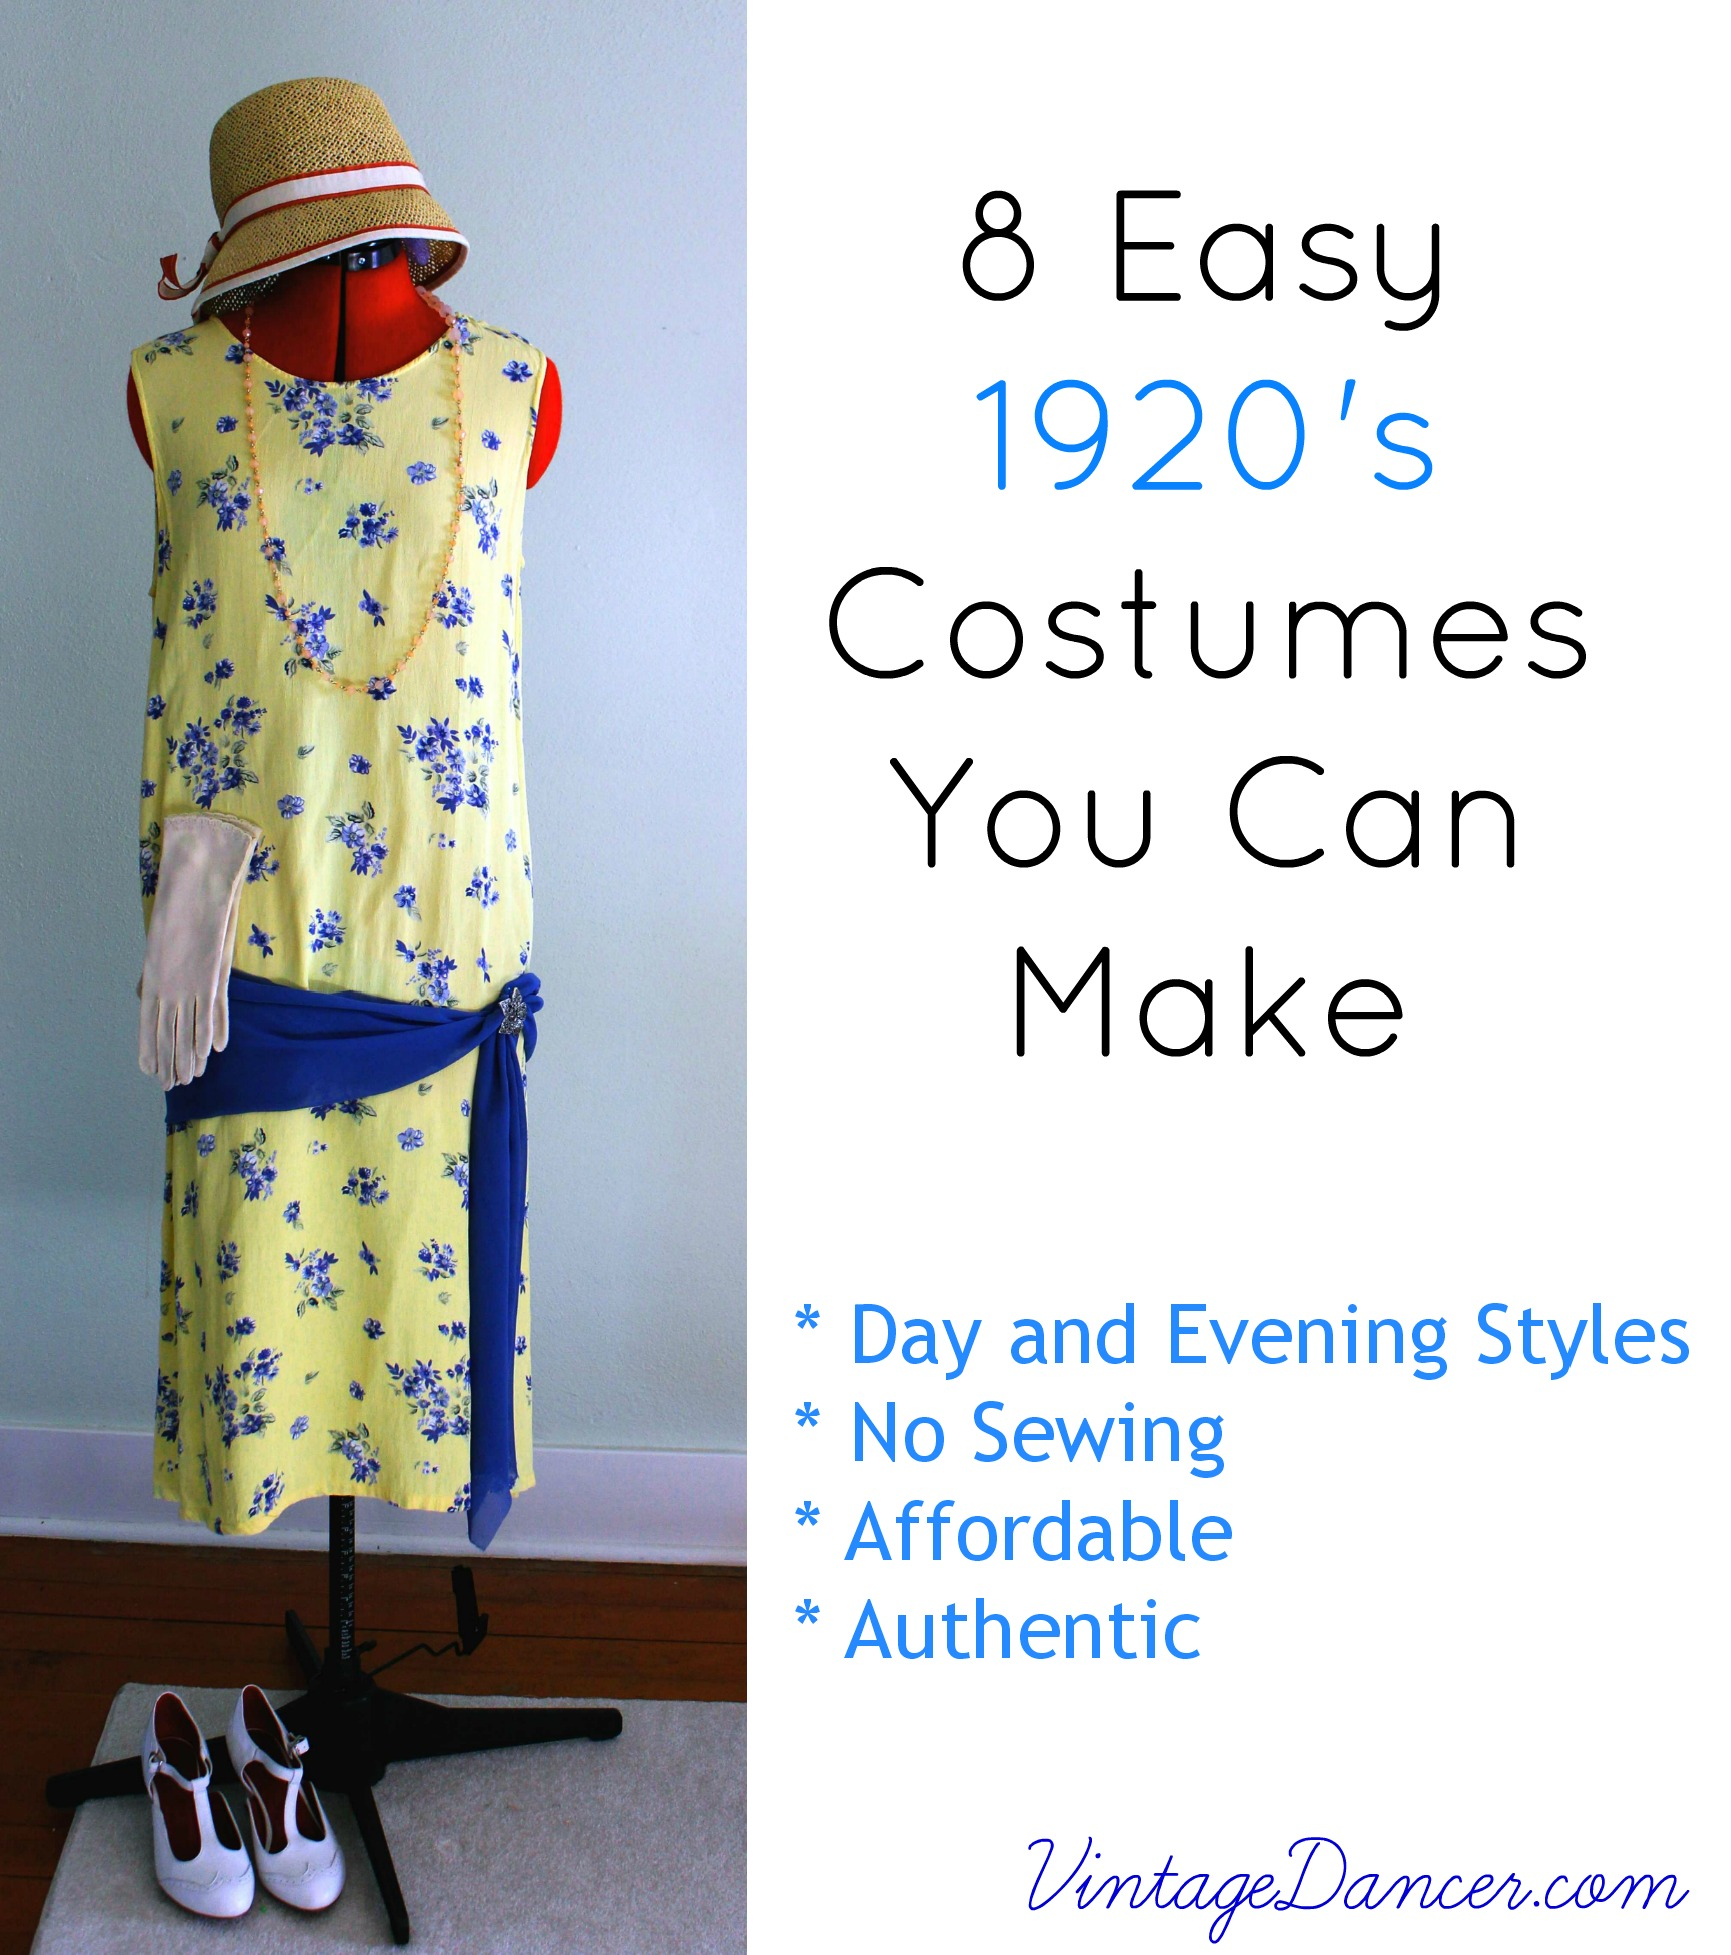 10 Easy 1920s Outfits for Women